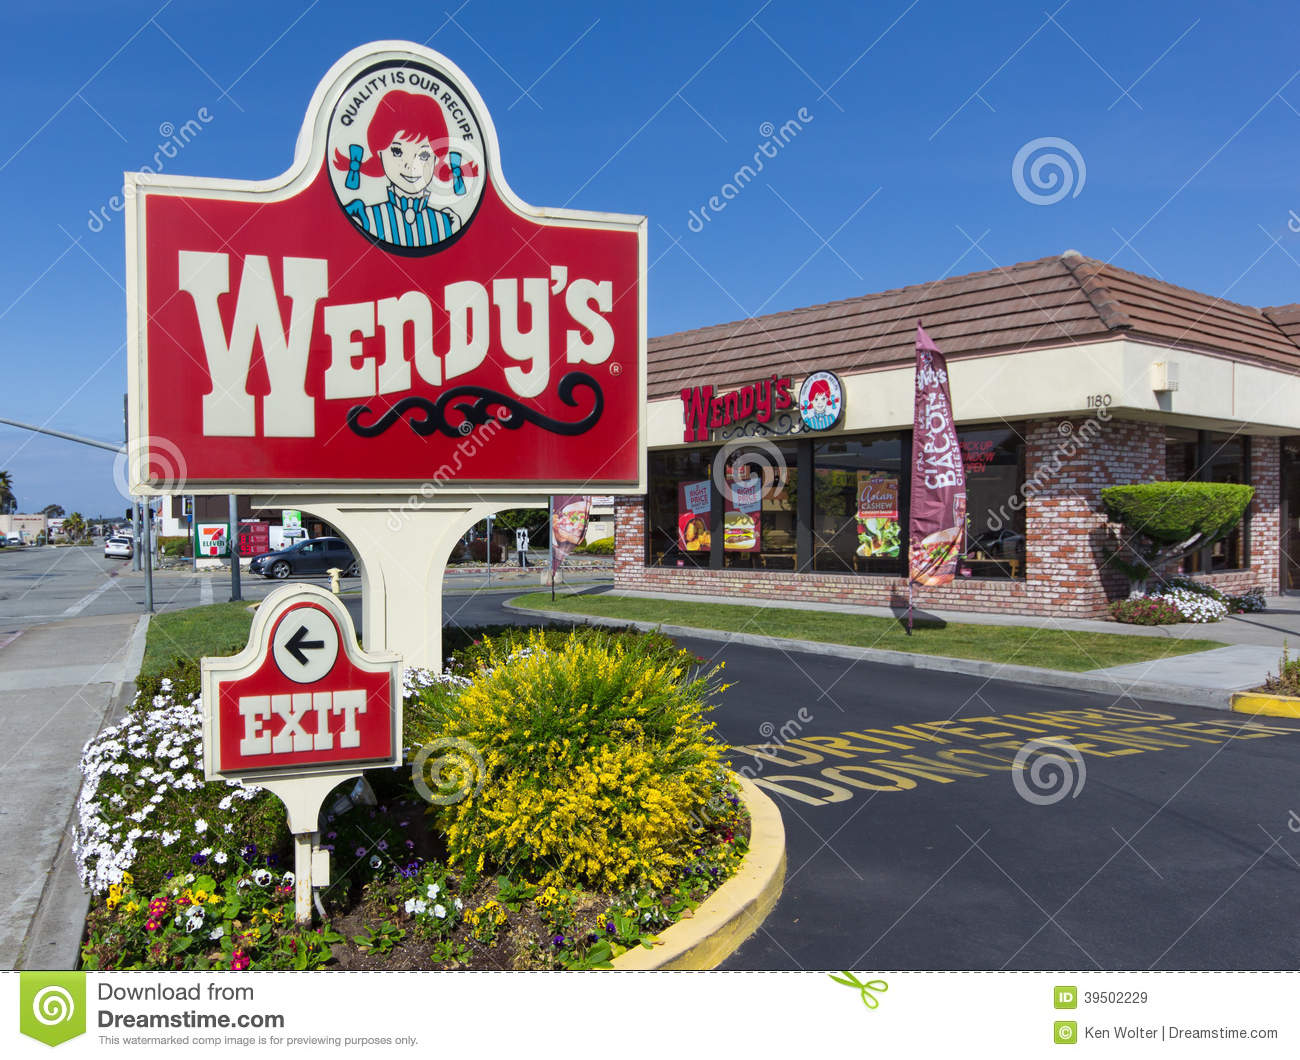 Wendy s fast food restaurant exterior and sign.